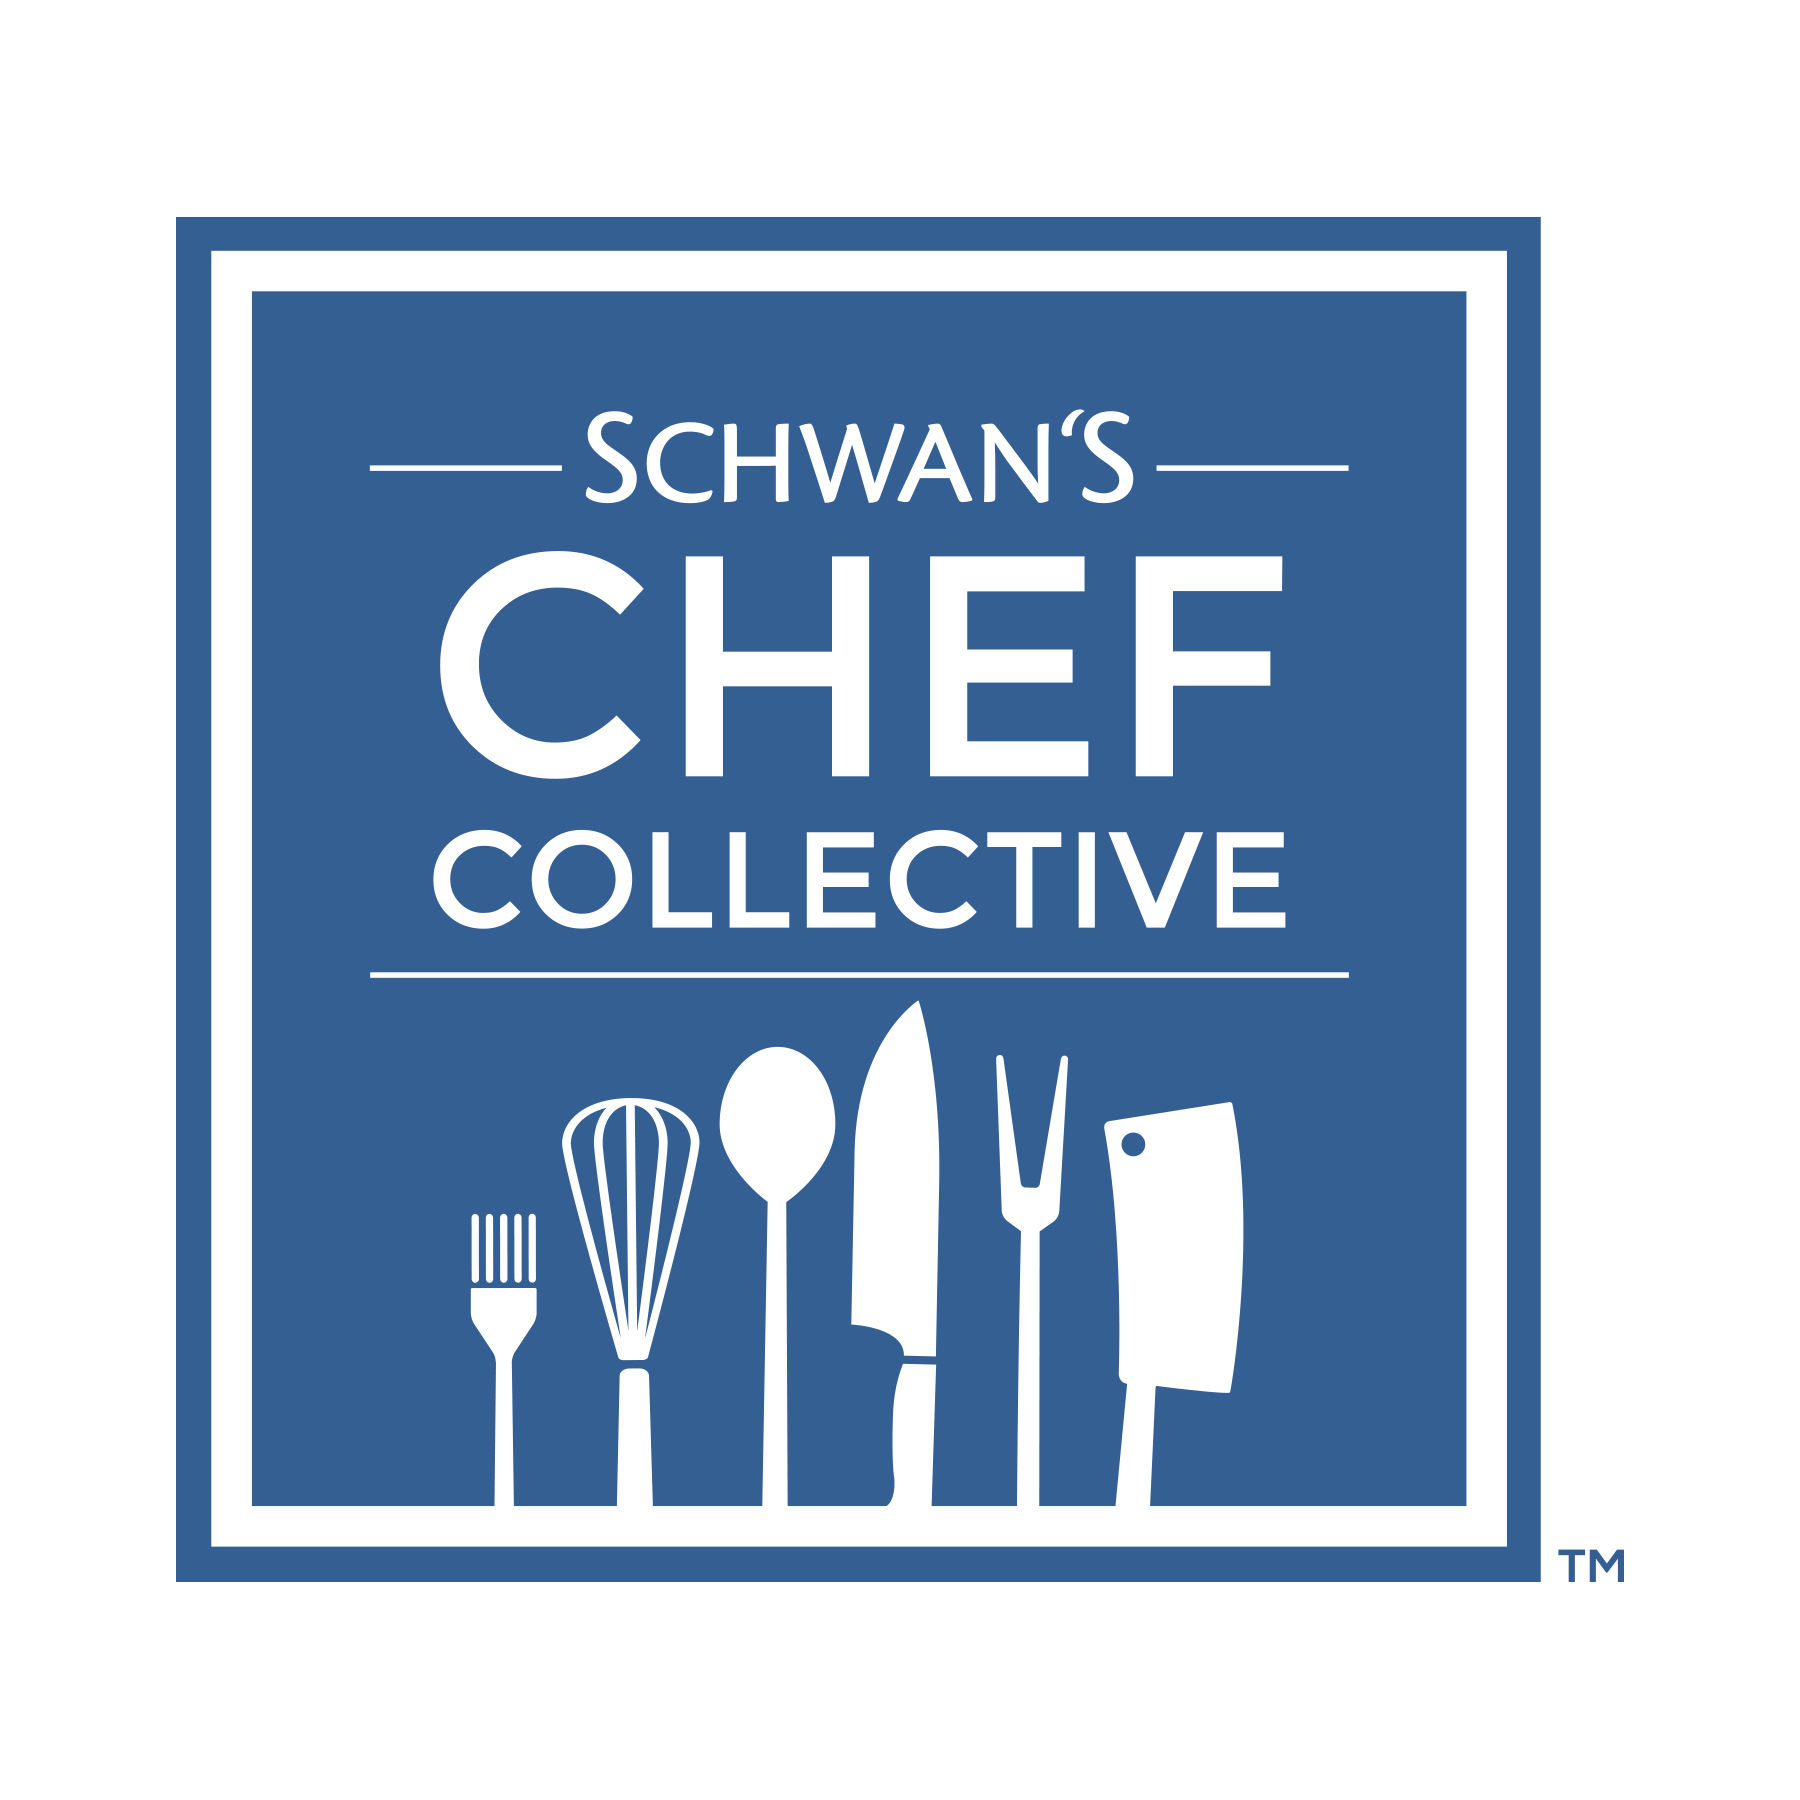 Schwan\'s Chef Collective Looks to Inspire New Food Concepts in 2017 ...